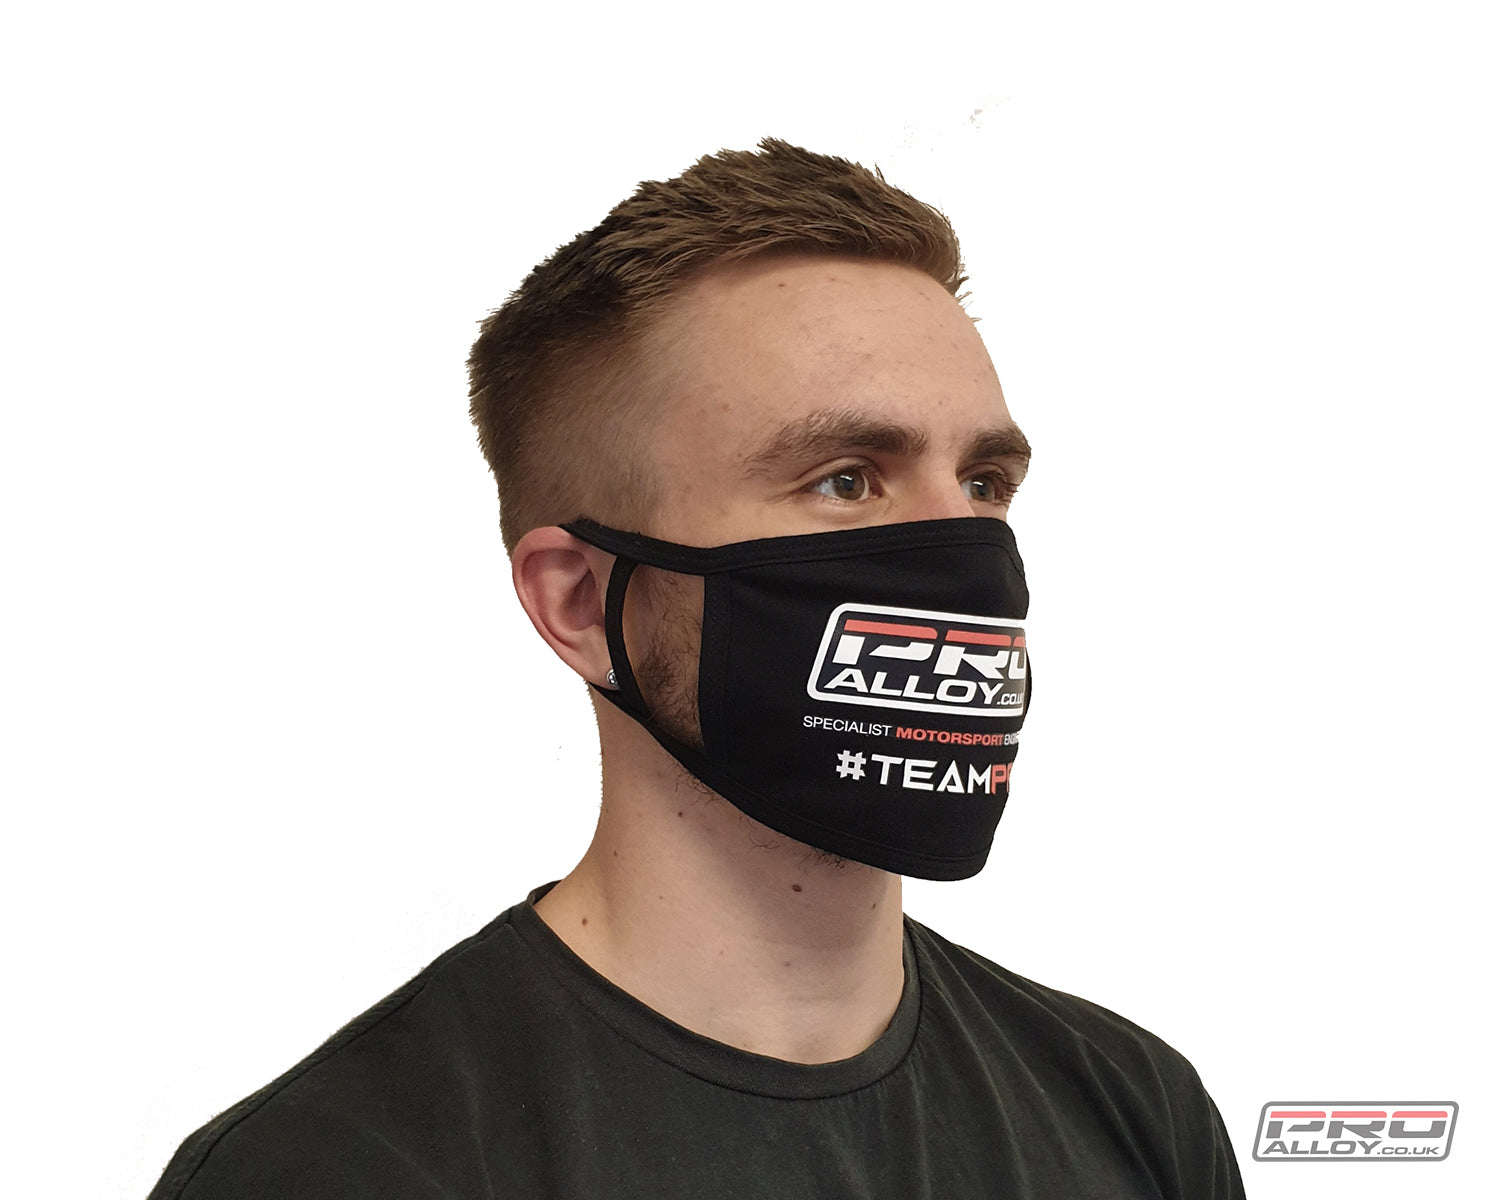 Pro Alloy Branded 'TEAMPRO' Face Mask